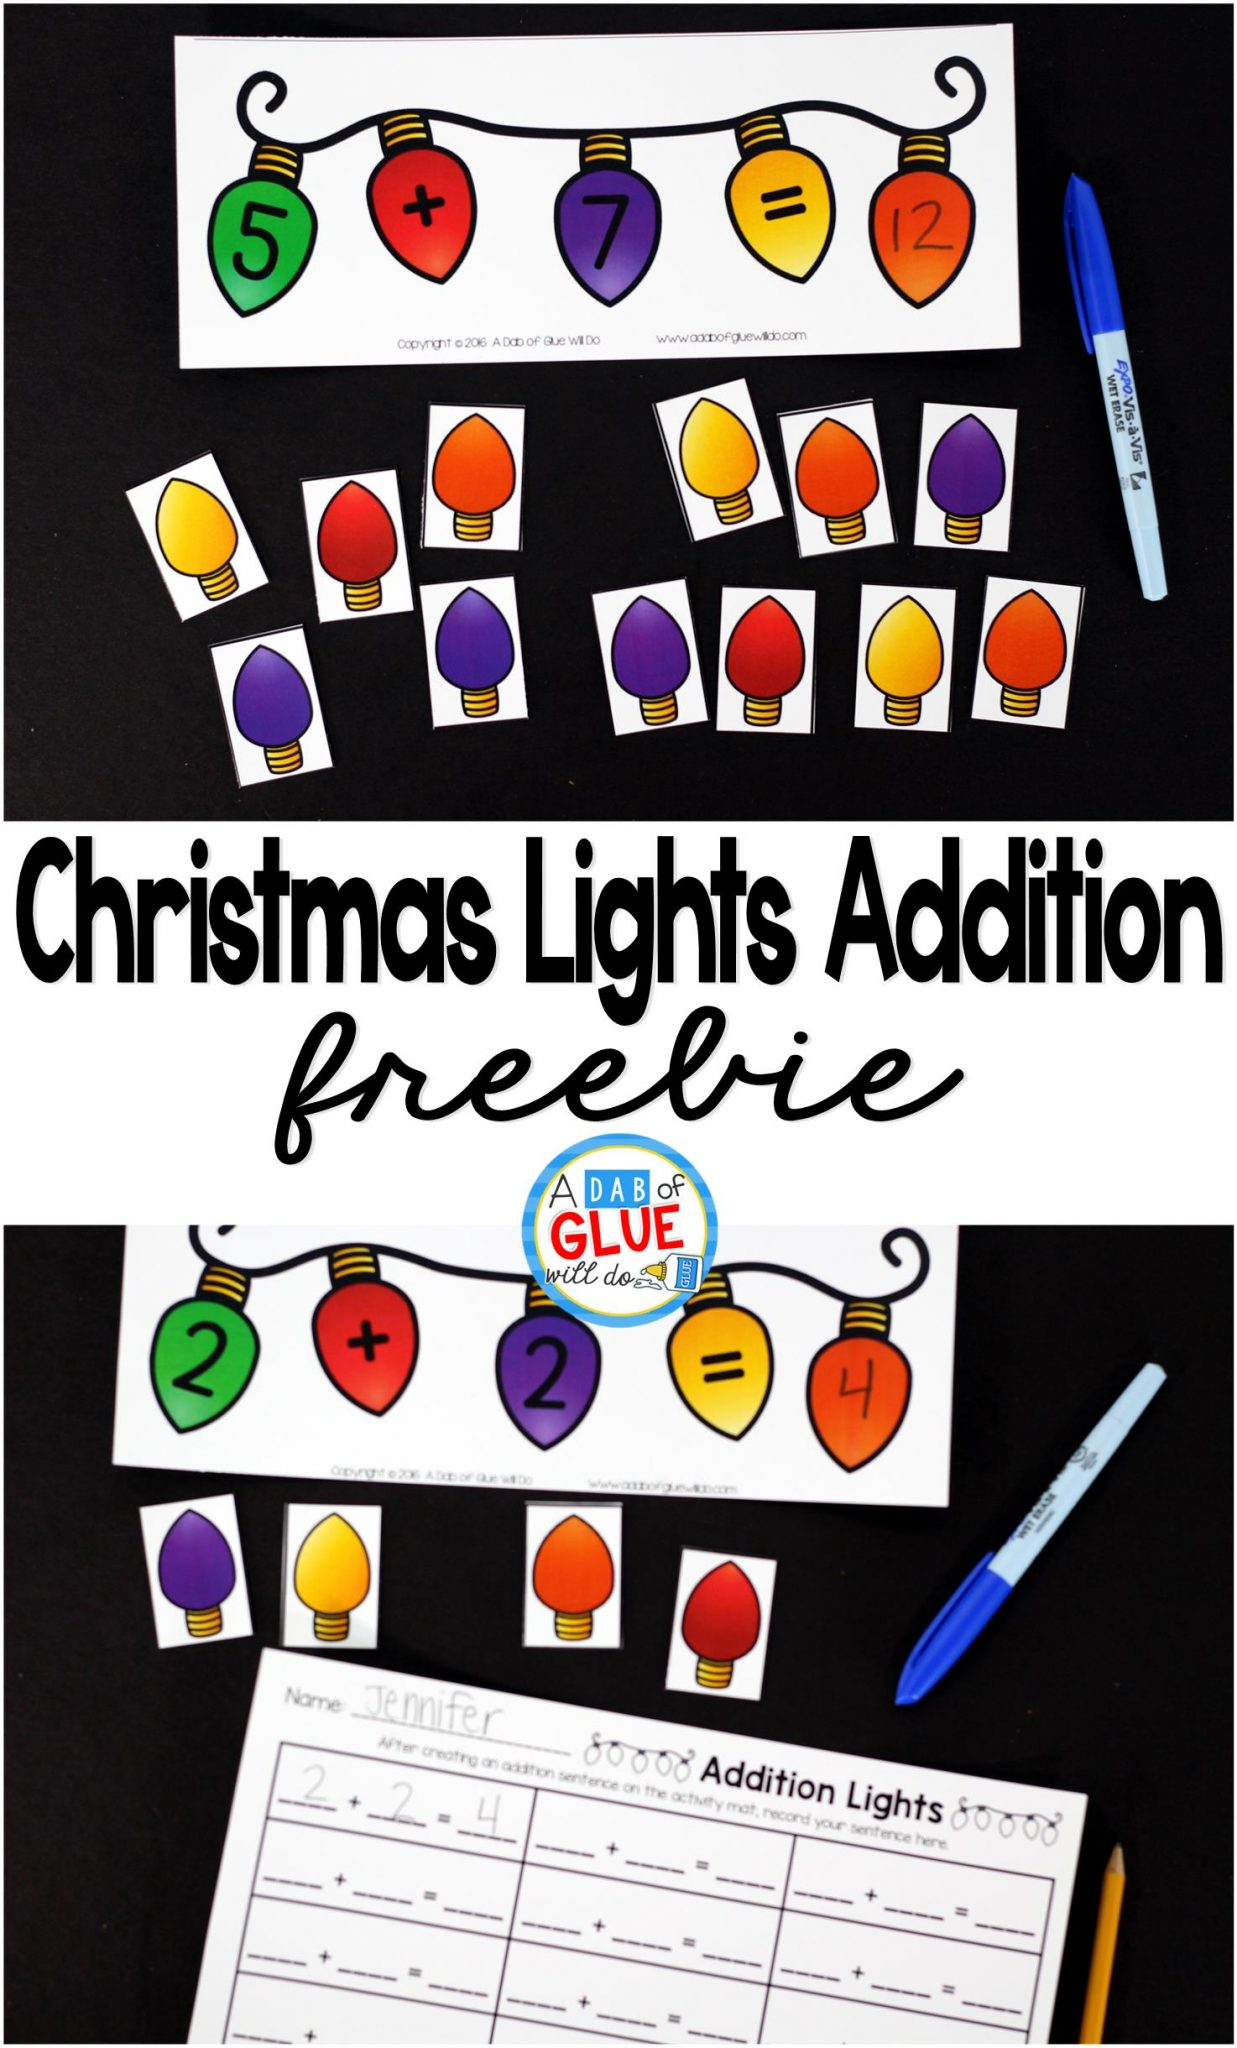 Christmas Lights Addition Printable Math Worksheets A Dab of – Christmas Math Worksheets for First Grade